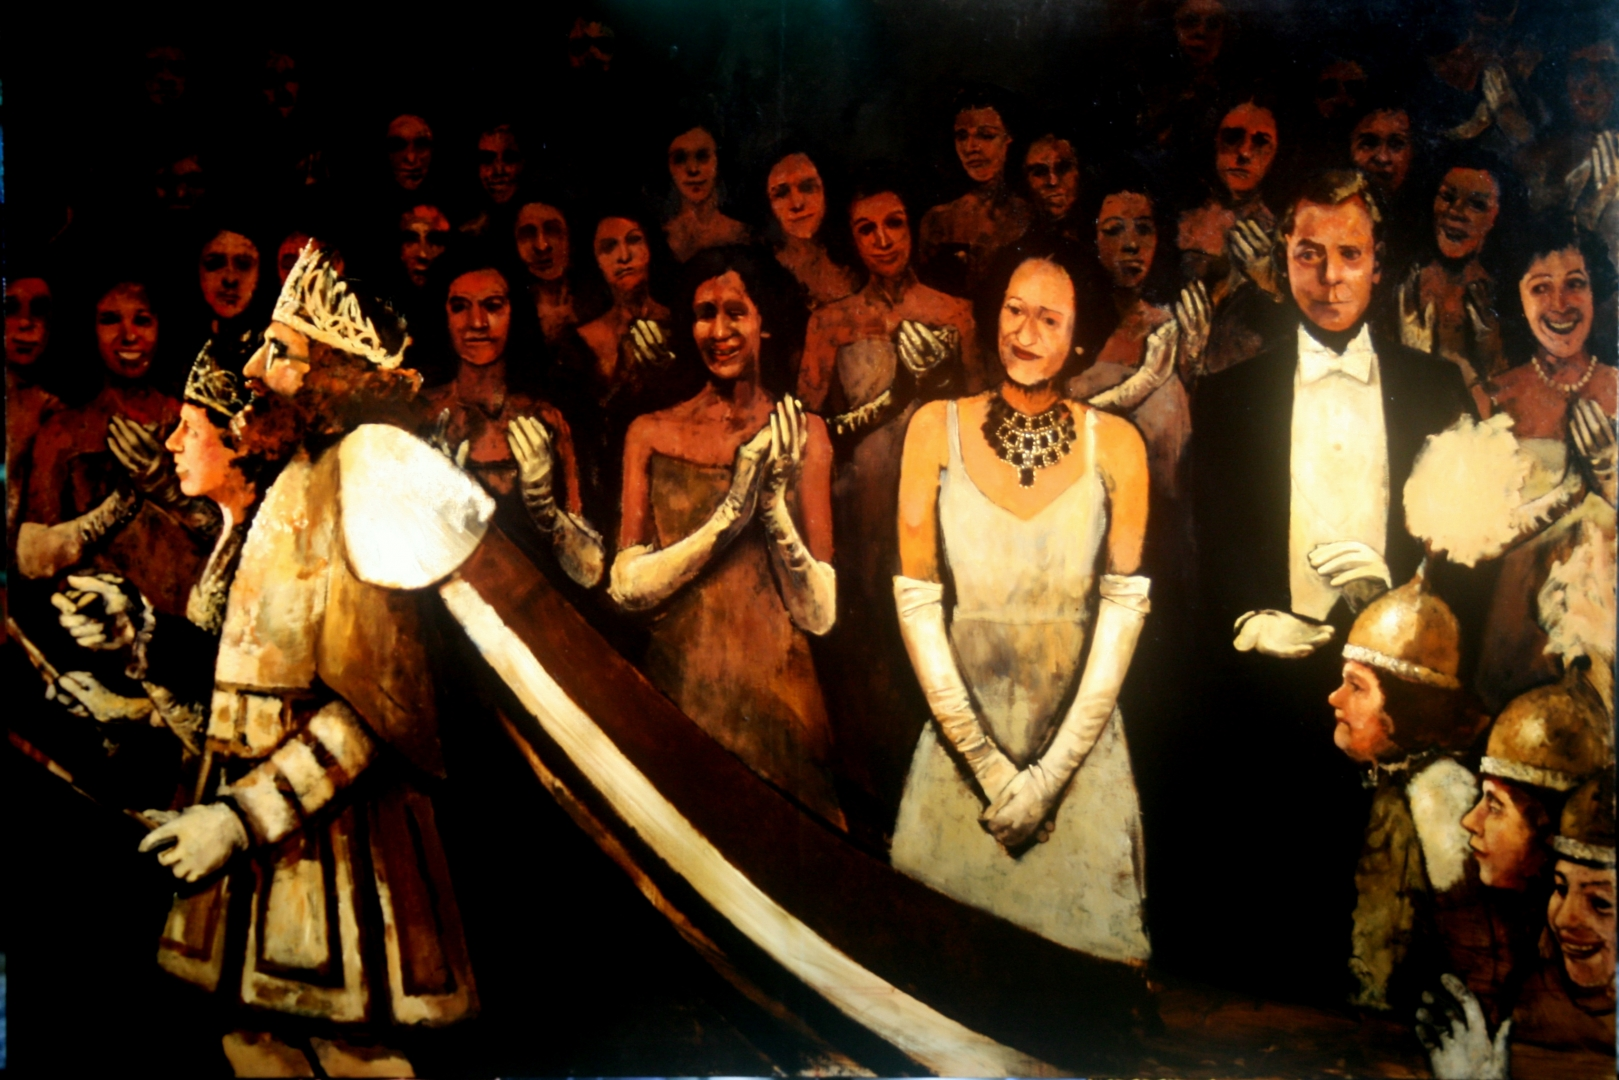 The Duke and Duchess of Windsor at the Comus Ball 1950 :: Oil on canvas